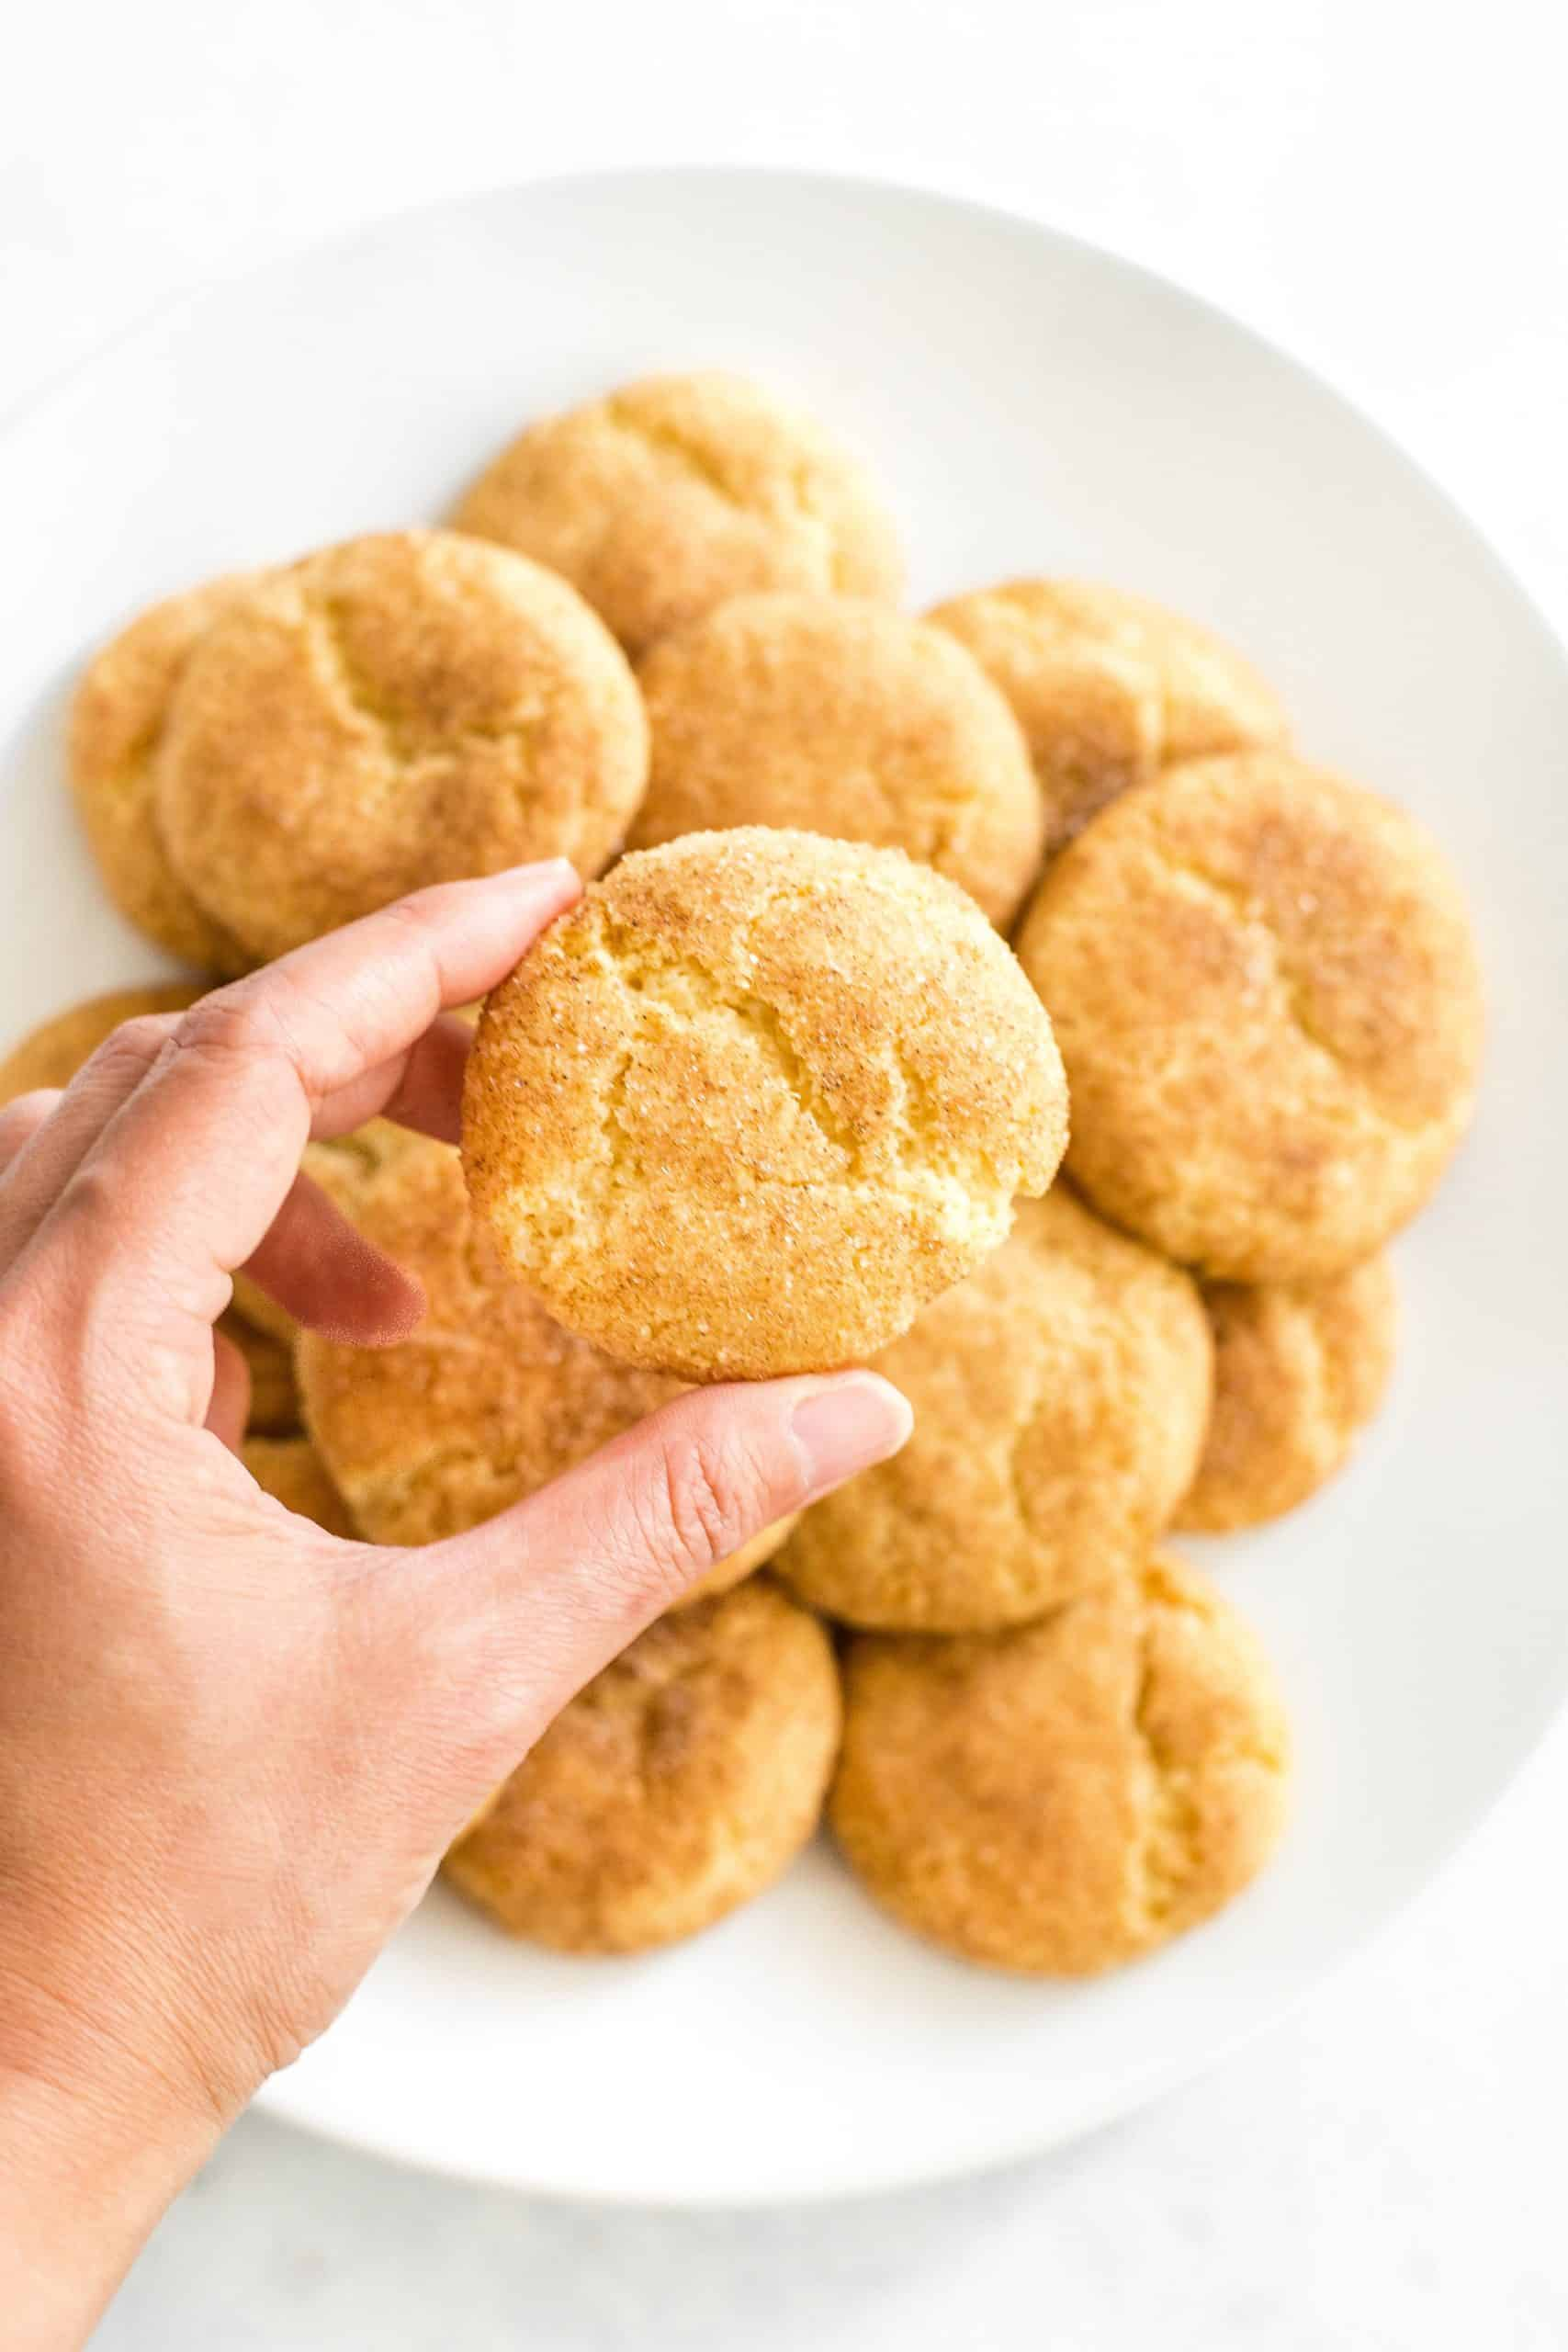 Hand holding up a snickerdoodle cookie.